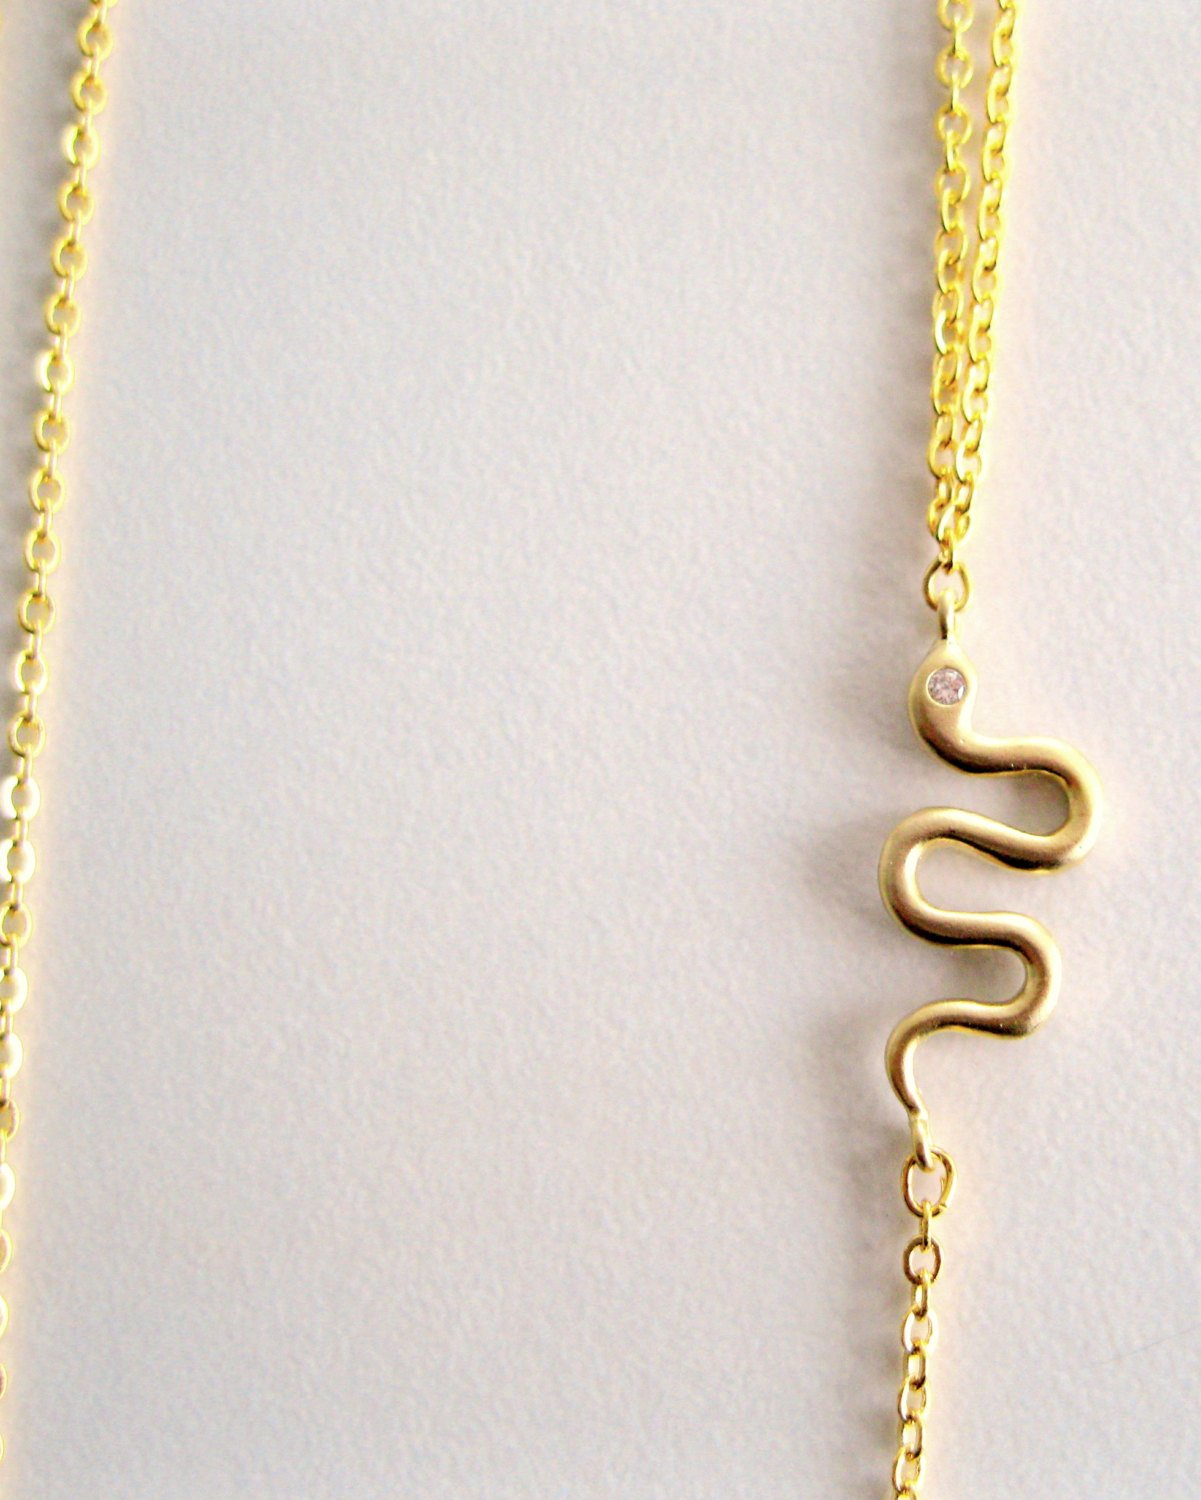 Le Serpent Necklace